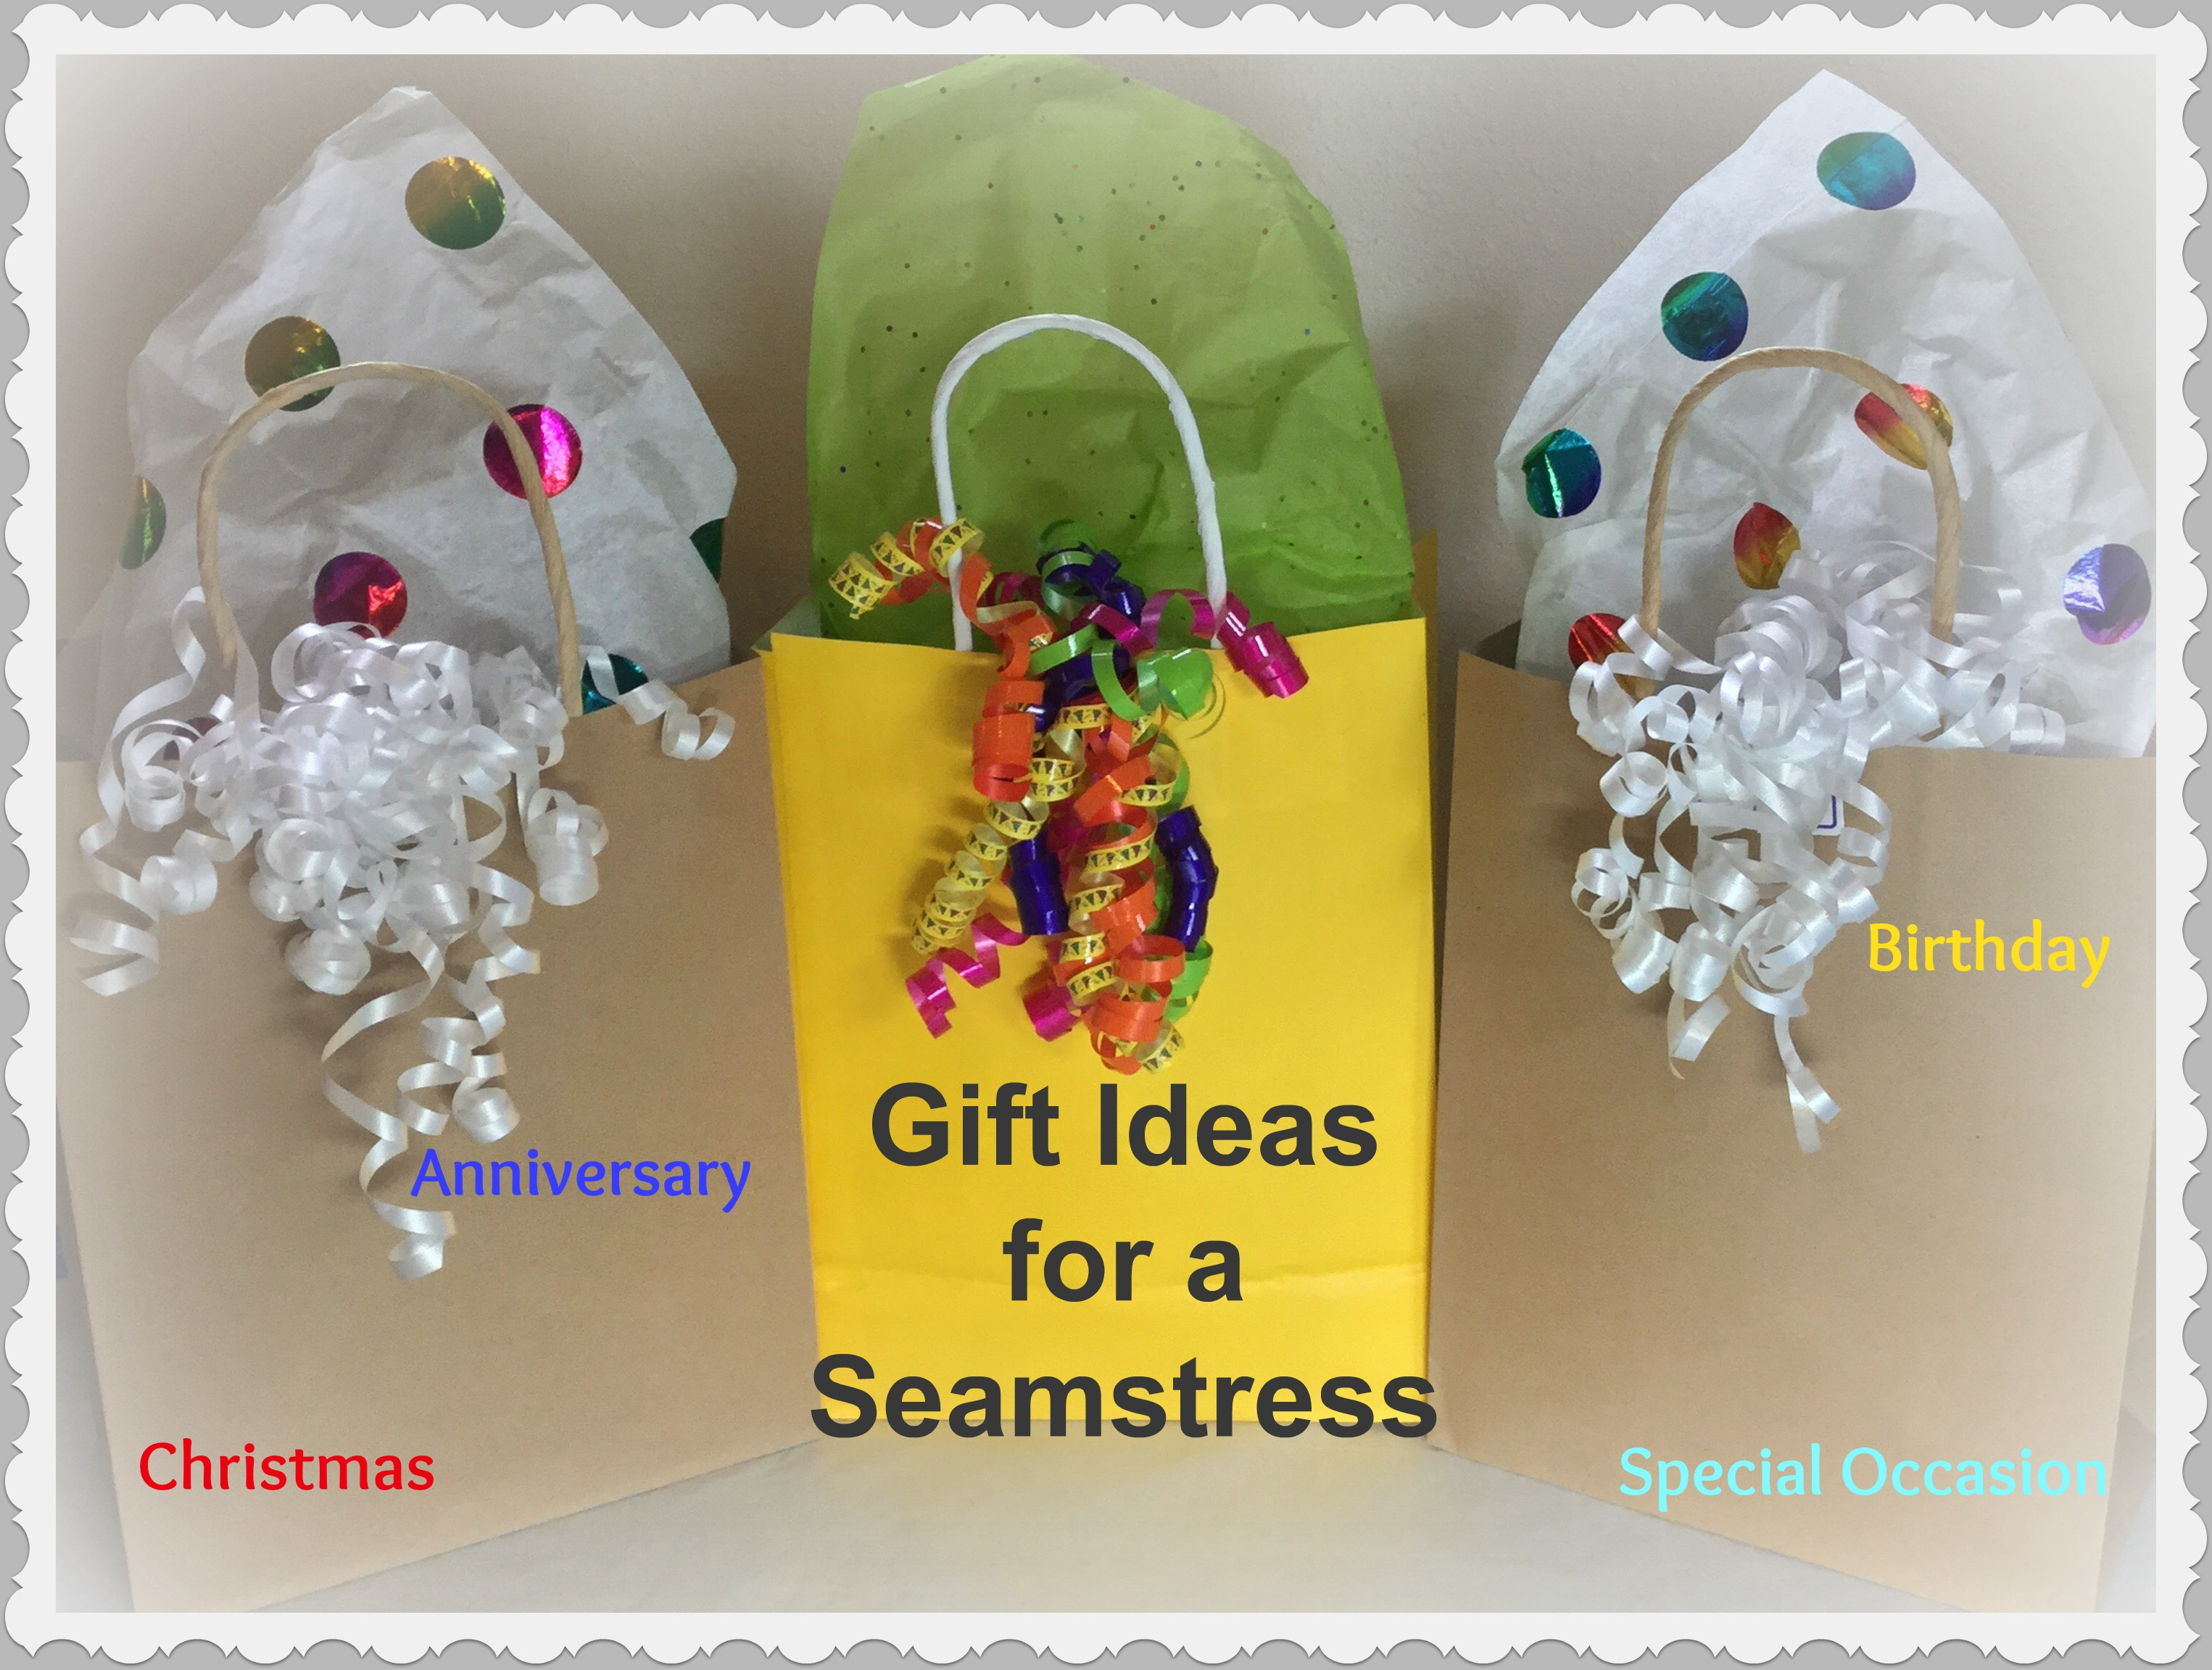 Awesome Sewing Gadgets & Gifts For a Seamstress!! 2018 Gift Giving Season